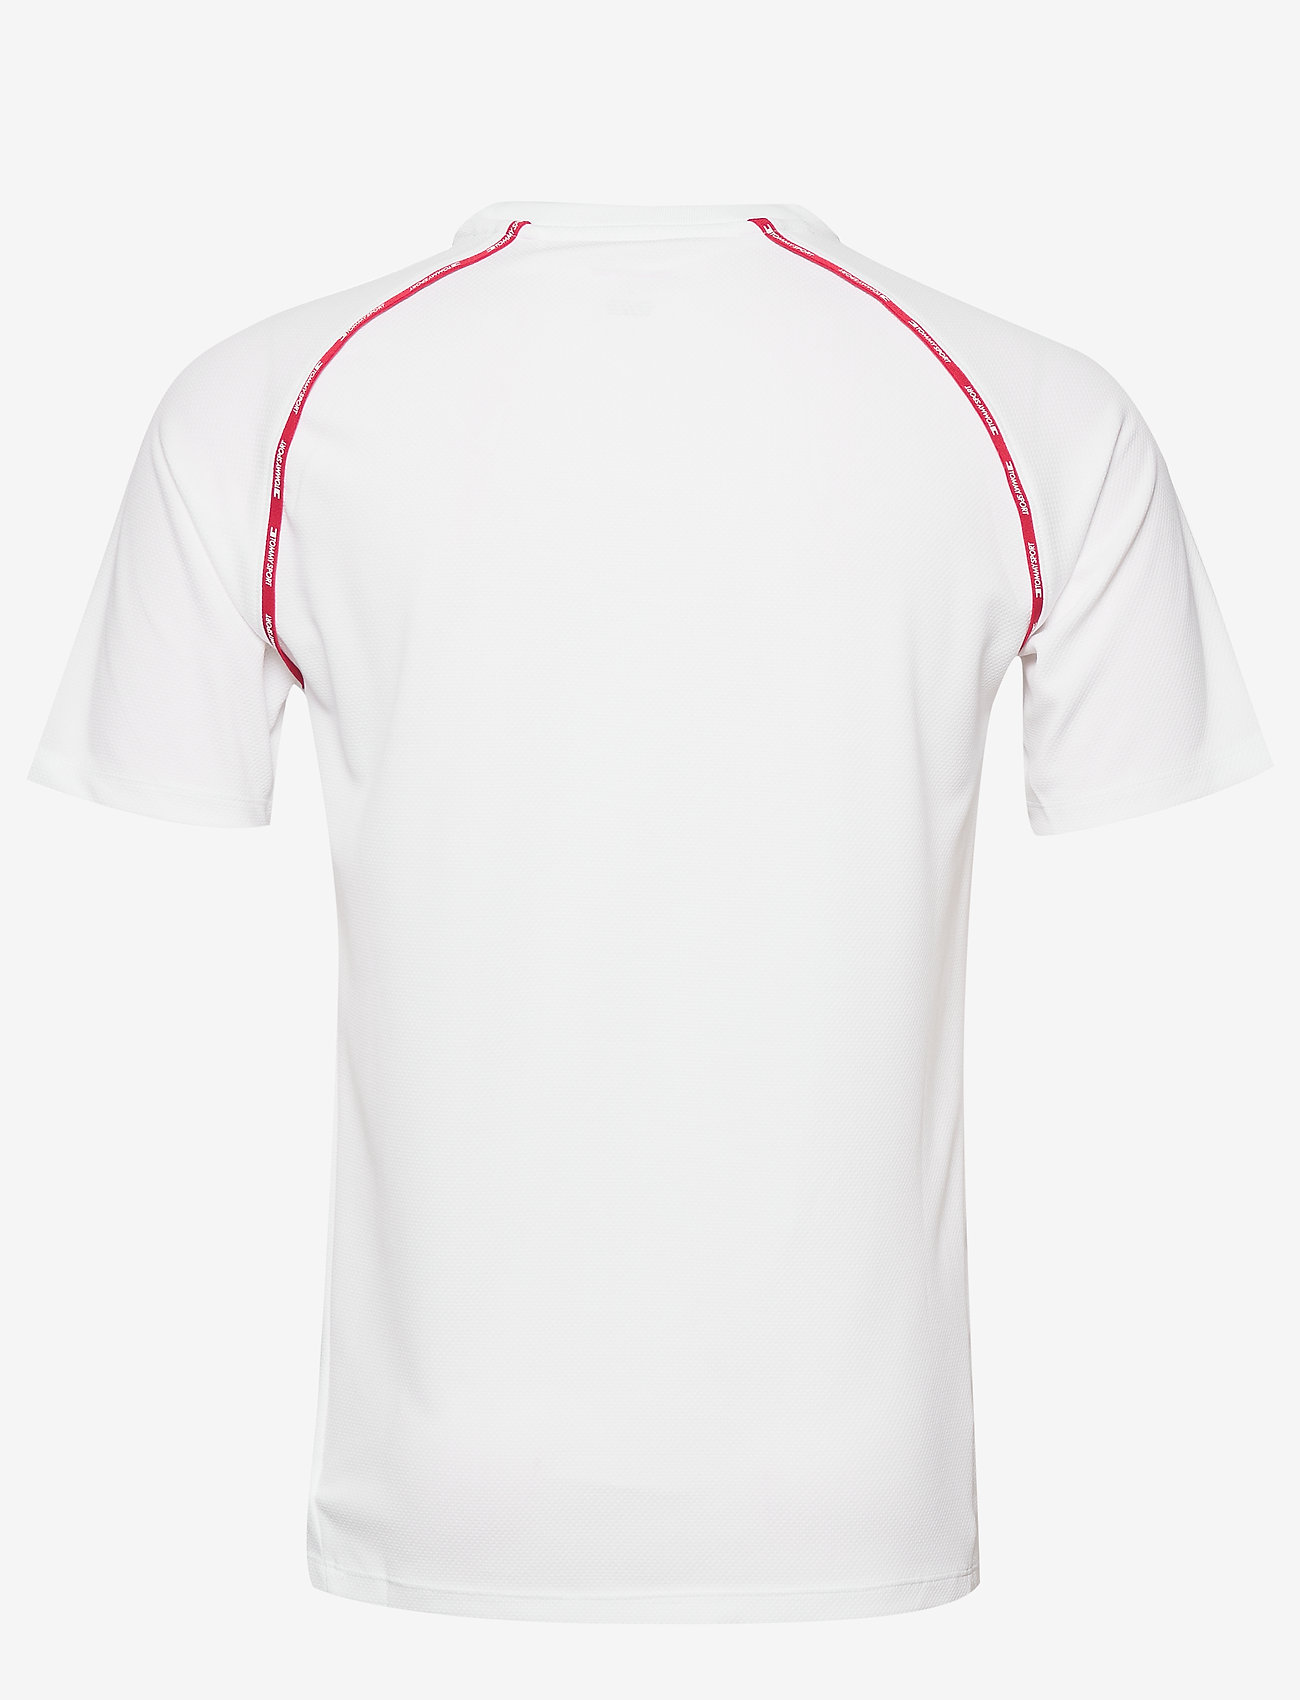 Tommy Sport - PIPING TRAINING TOP - t-shirts - white - 1